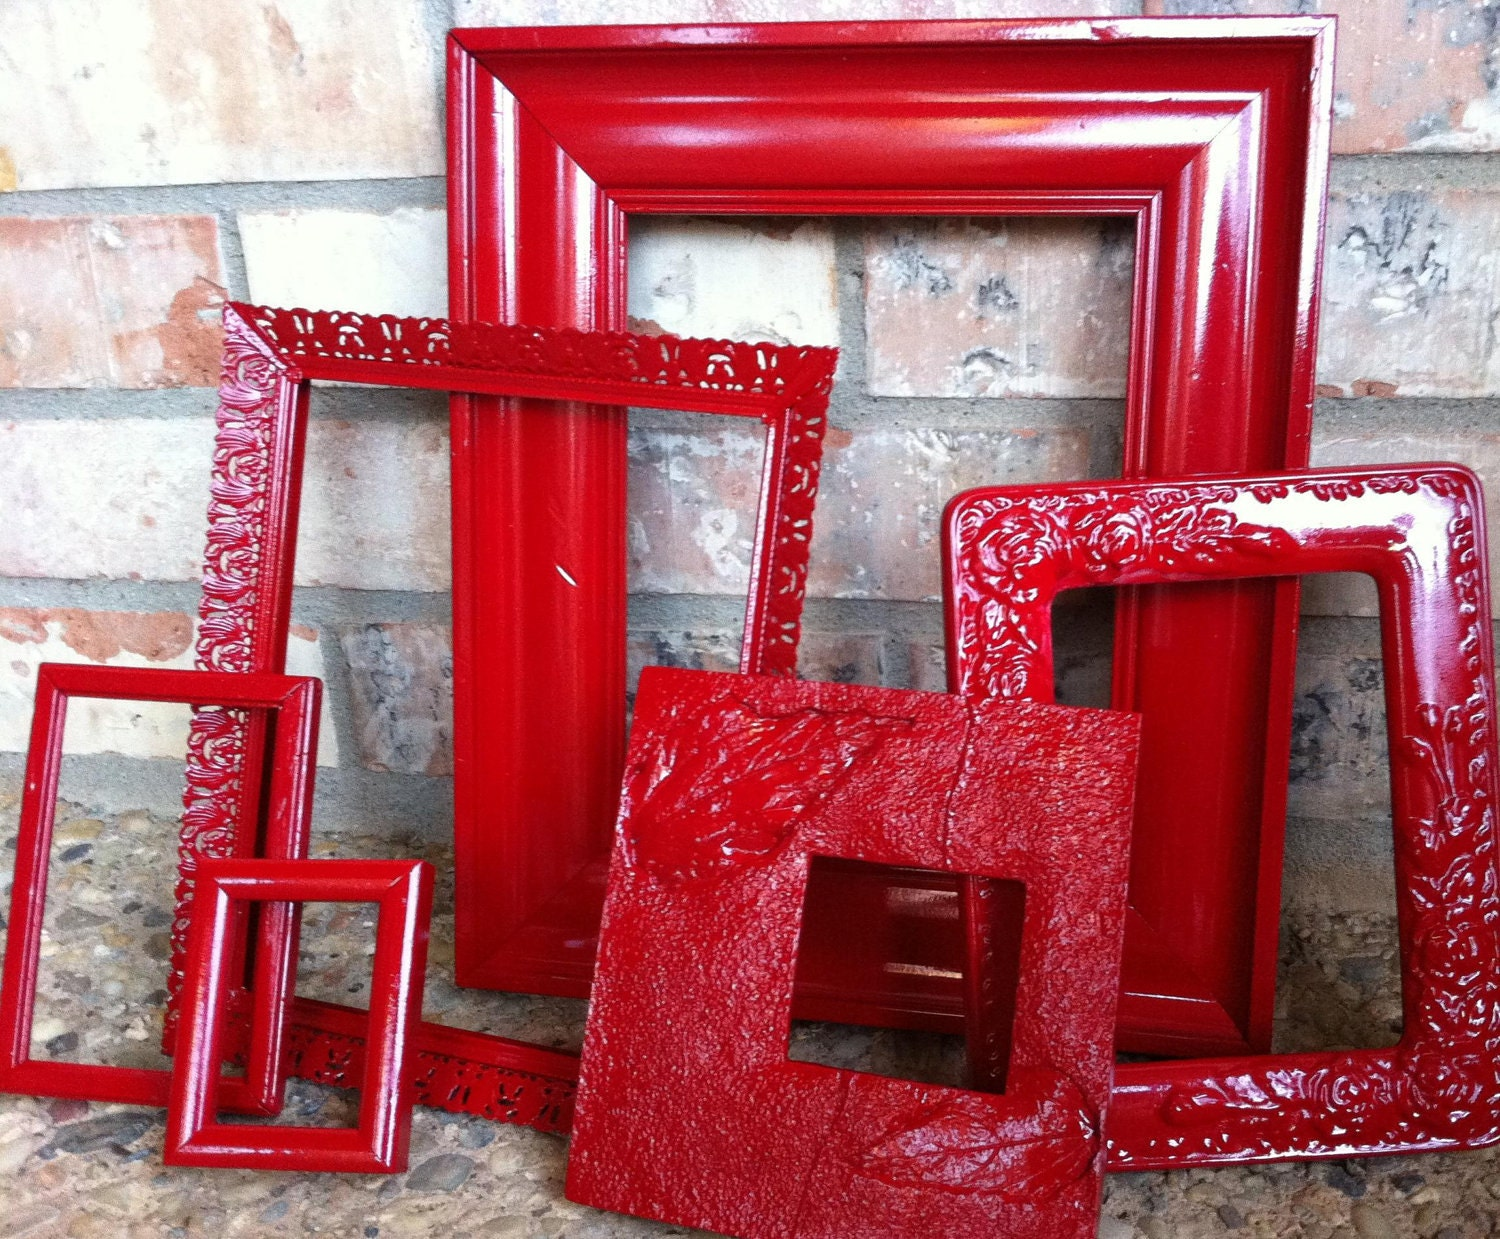 Upcycled frames vintage red frames unique home decor alice for Unusual house decorations